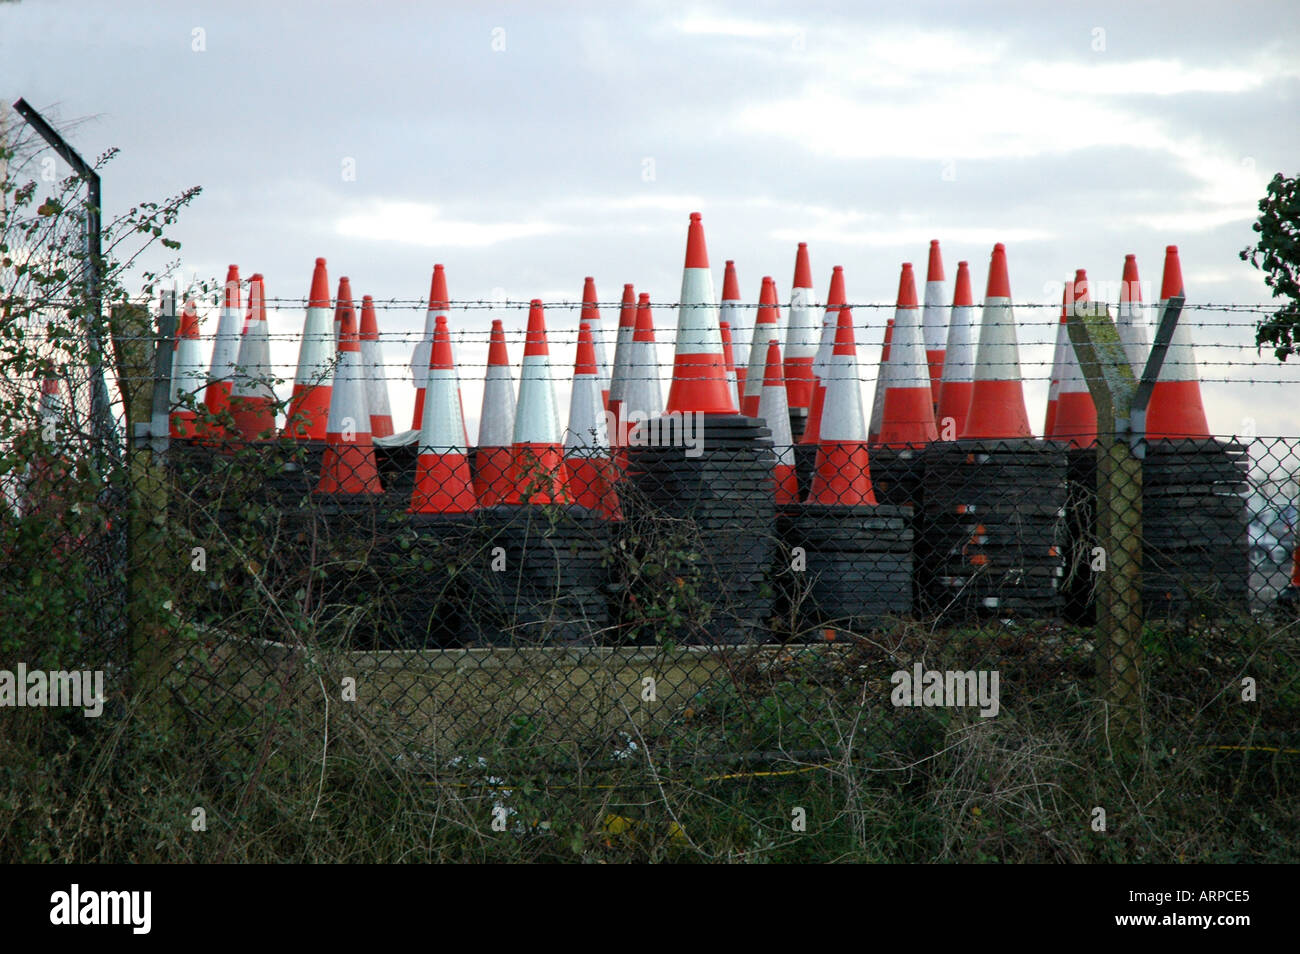 Traffic cones stacked behind fence - Stock Image